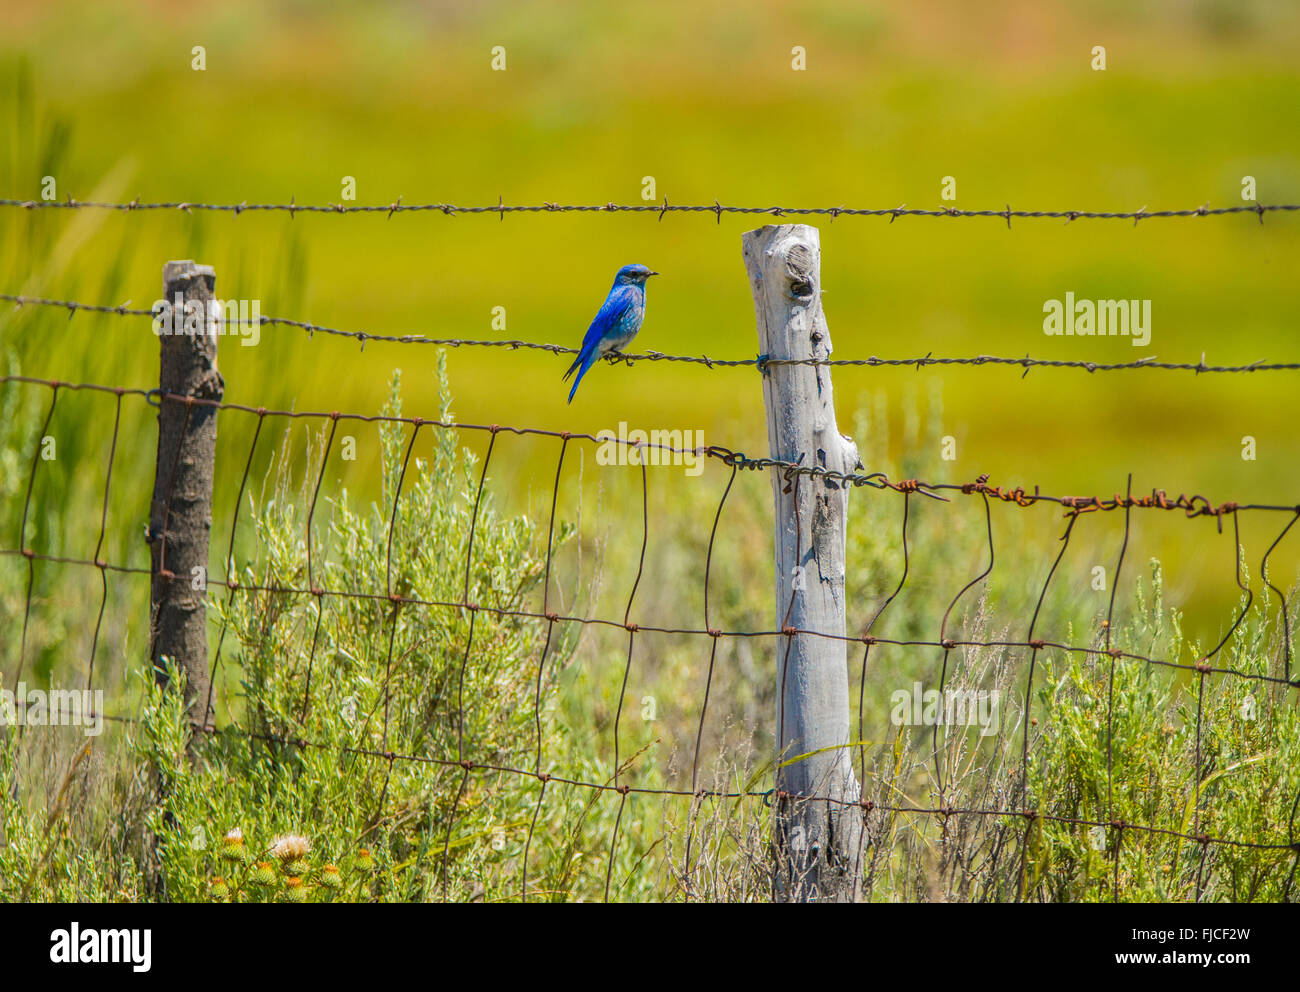 Birds, Mountain Blue Bird perched on a fence. Idaho State Bird, Idaho, USA - Stock Image